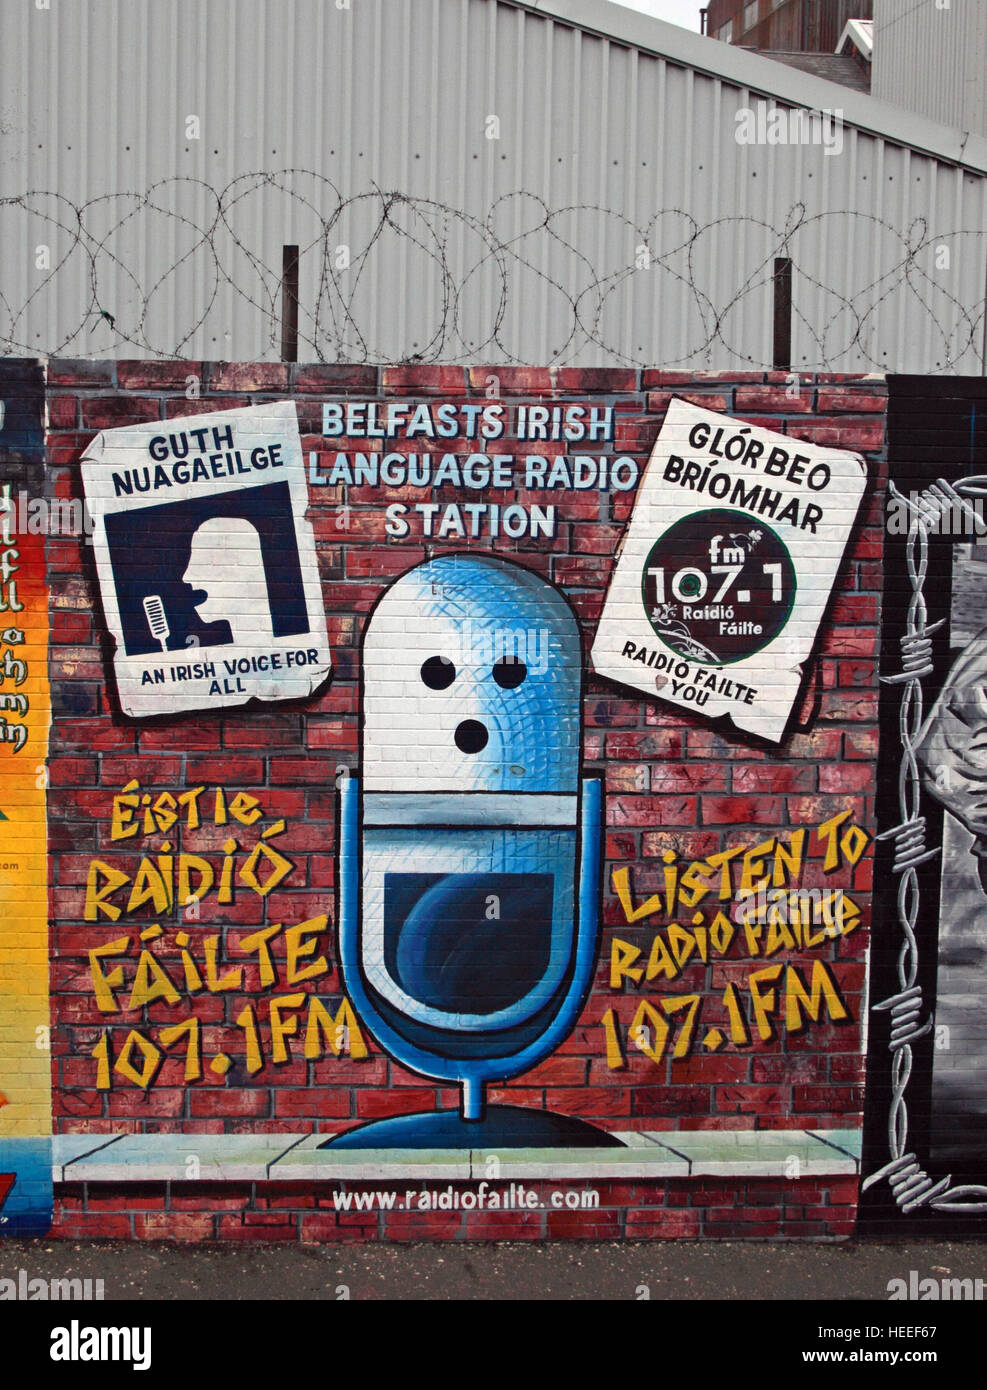 Road,painting,graffiti,resistance,IRA,peace,Northern Ireland,NI,UK,St,street,Eire,Irish,Republic,Irish Republic,conflict,Irish Republican Army,Political Change,Guth Nuagaeil,Irish voice for all,Radio Failte,Mic,Microphone,GoTonySmith,@HotpixUK,Tony,Smith,UK,GB,Great,Britain,United,Kingdom,Irish,British,Ireland,problem,with,problem with,issue with,NI,Northern,Northern Ireland,Belfast,City,Centre,Art,Artists,the,troubles,The Troubles,Good Friday Agreement,Peace,honour,painting,wall,walls,tribute,republicanism,Fight,Justice,West,Beal,feirste,martyrs,social,tour,tourism,tourists,urban,six,counties,6,backdrop,county,Antrim,occupation,good,Friday,agreement,peace,reconciliation,IRA,terror,terrorists,genocide,Buy Pictures of,Buy Images Of,Images of,Stock Images,Tony Smith,United Kingdom,Great Britain,British Isles,republican cause